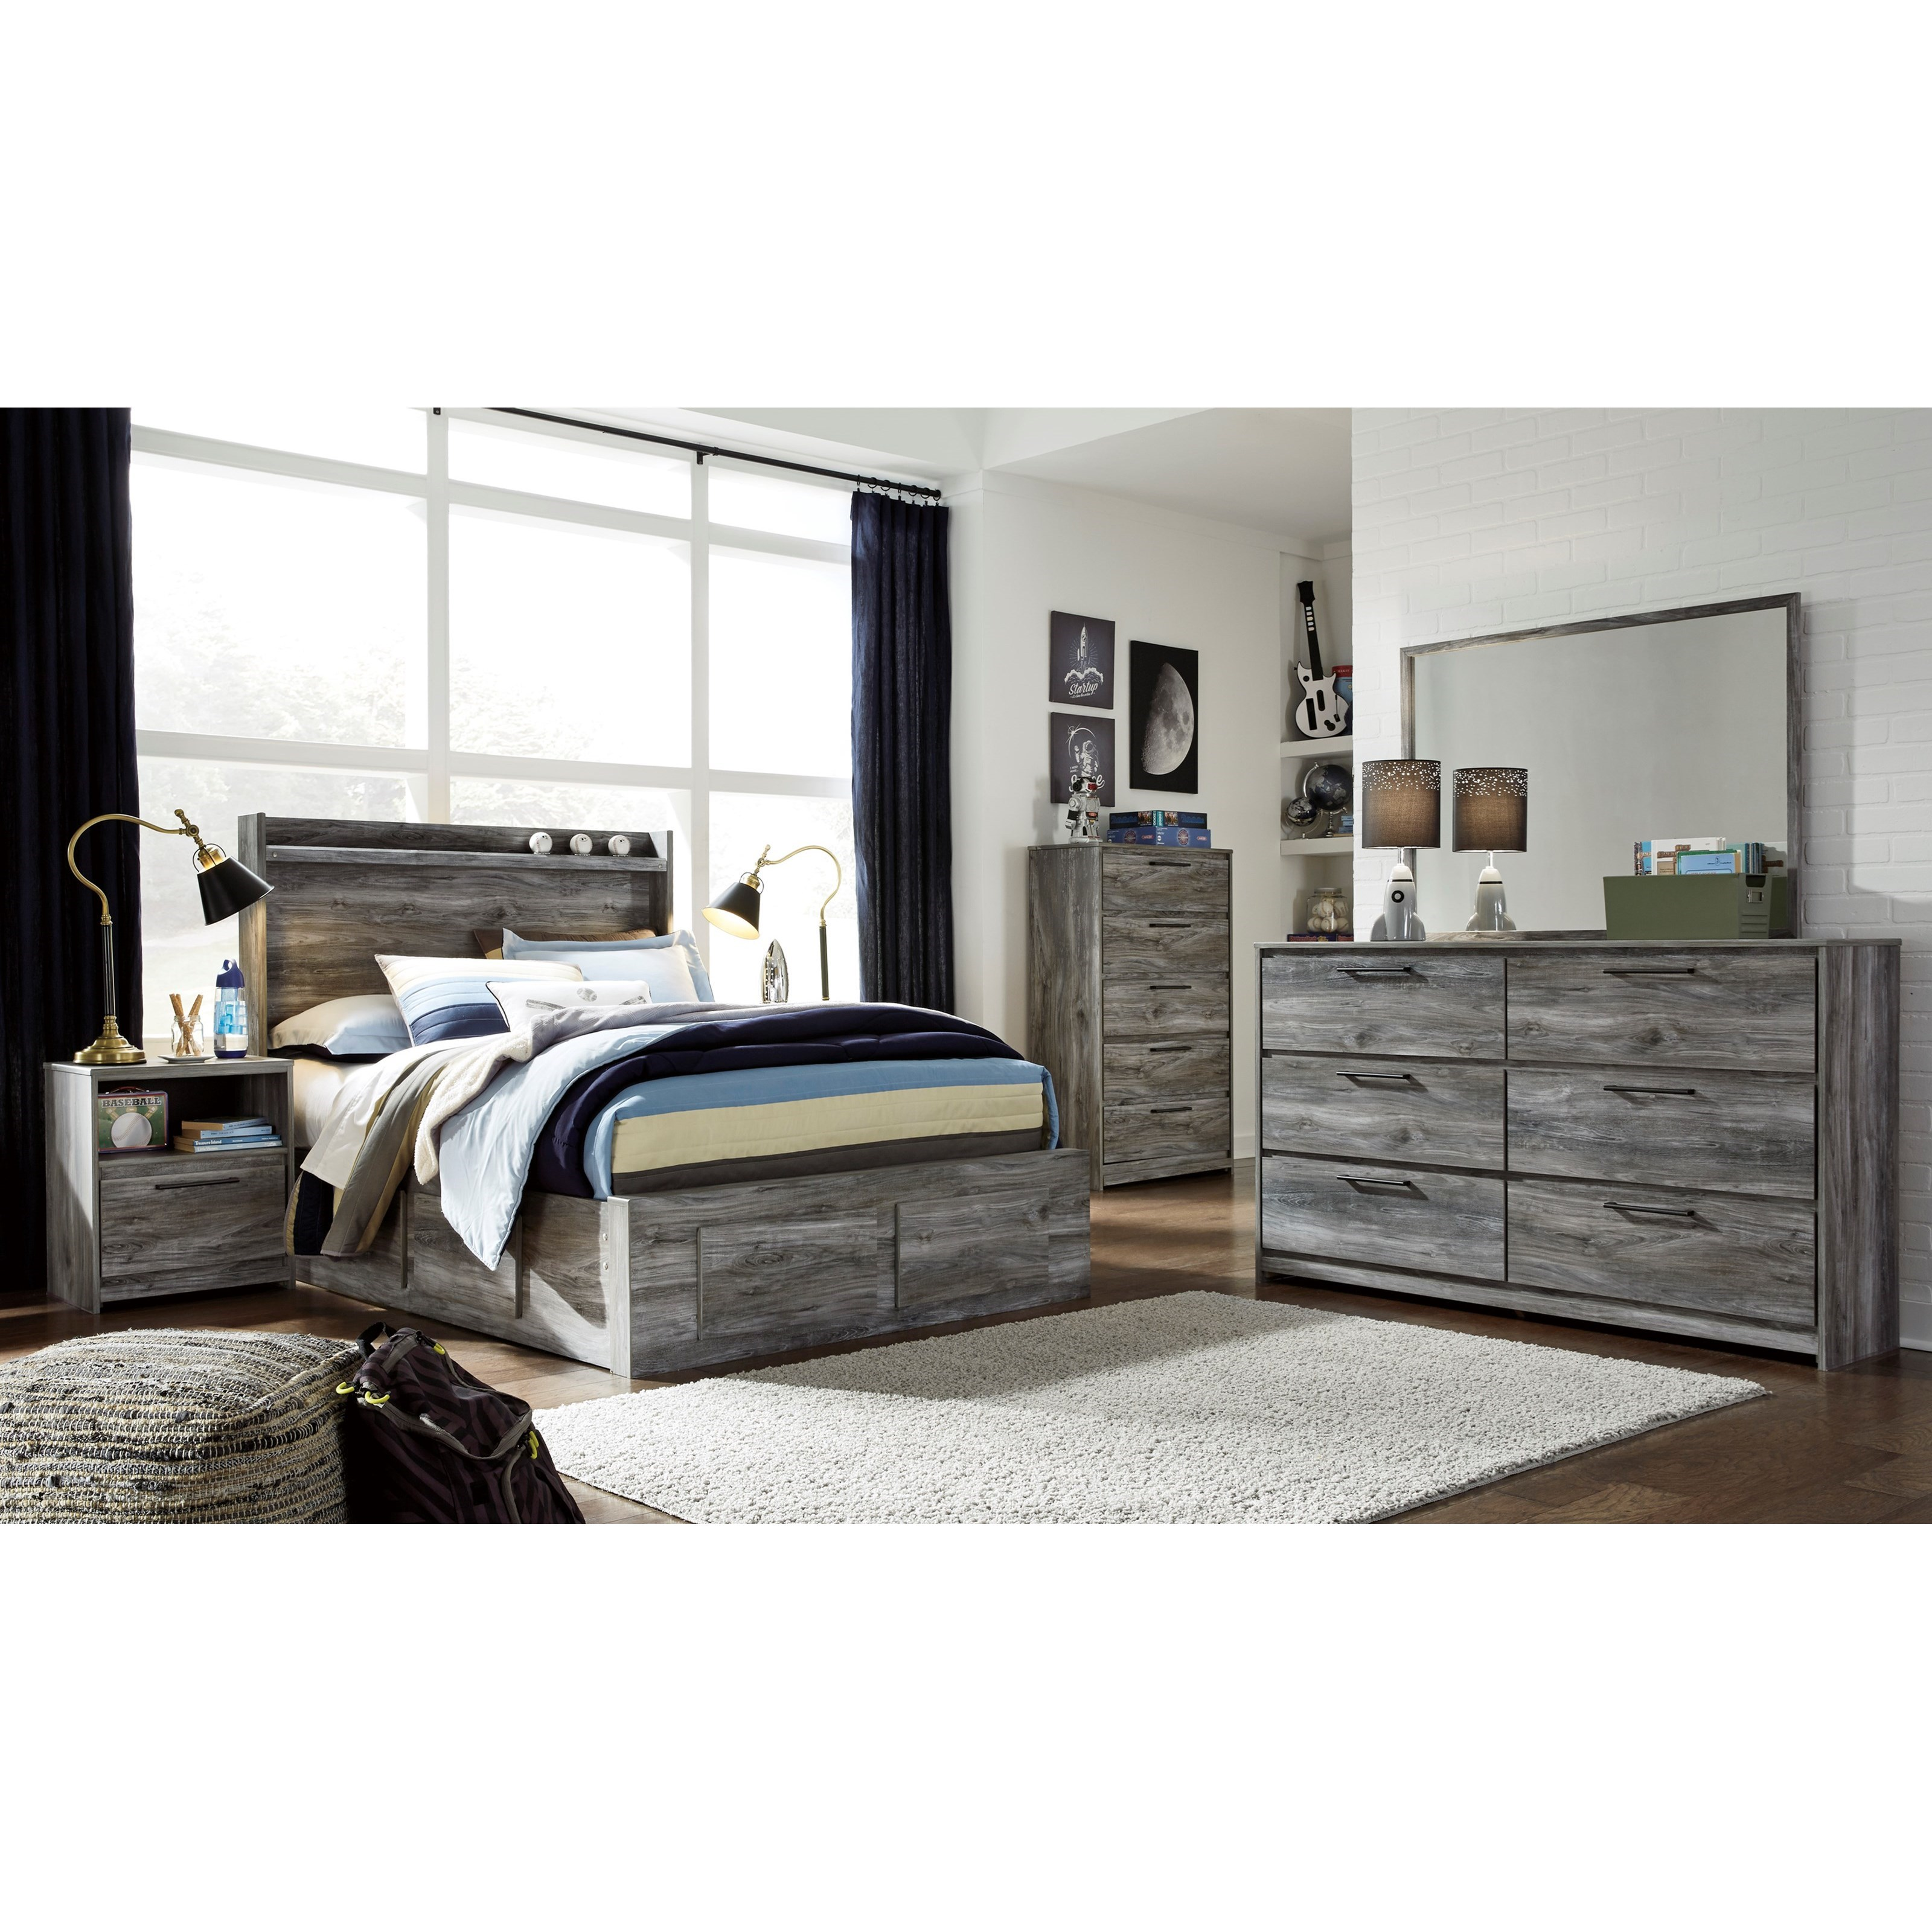 Baystorm Full Bedroom Group by Signature Design by Ashley at Zak's Warehouse Clearance Center